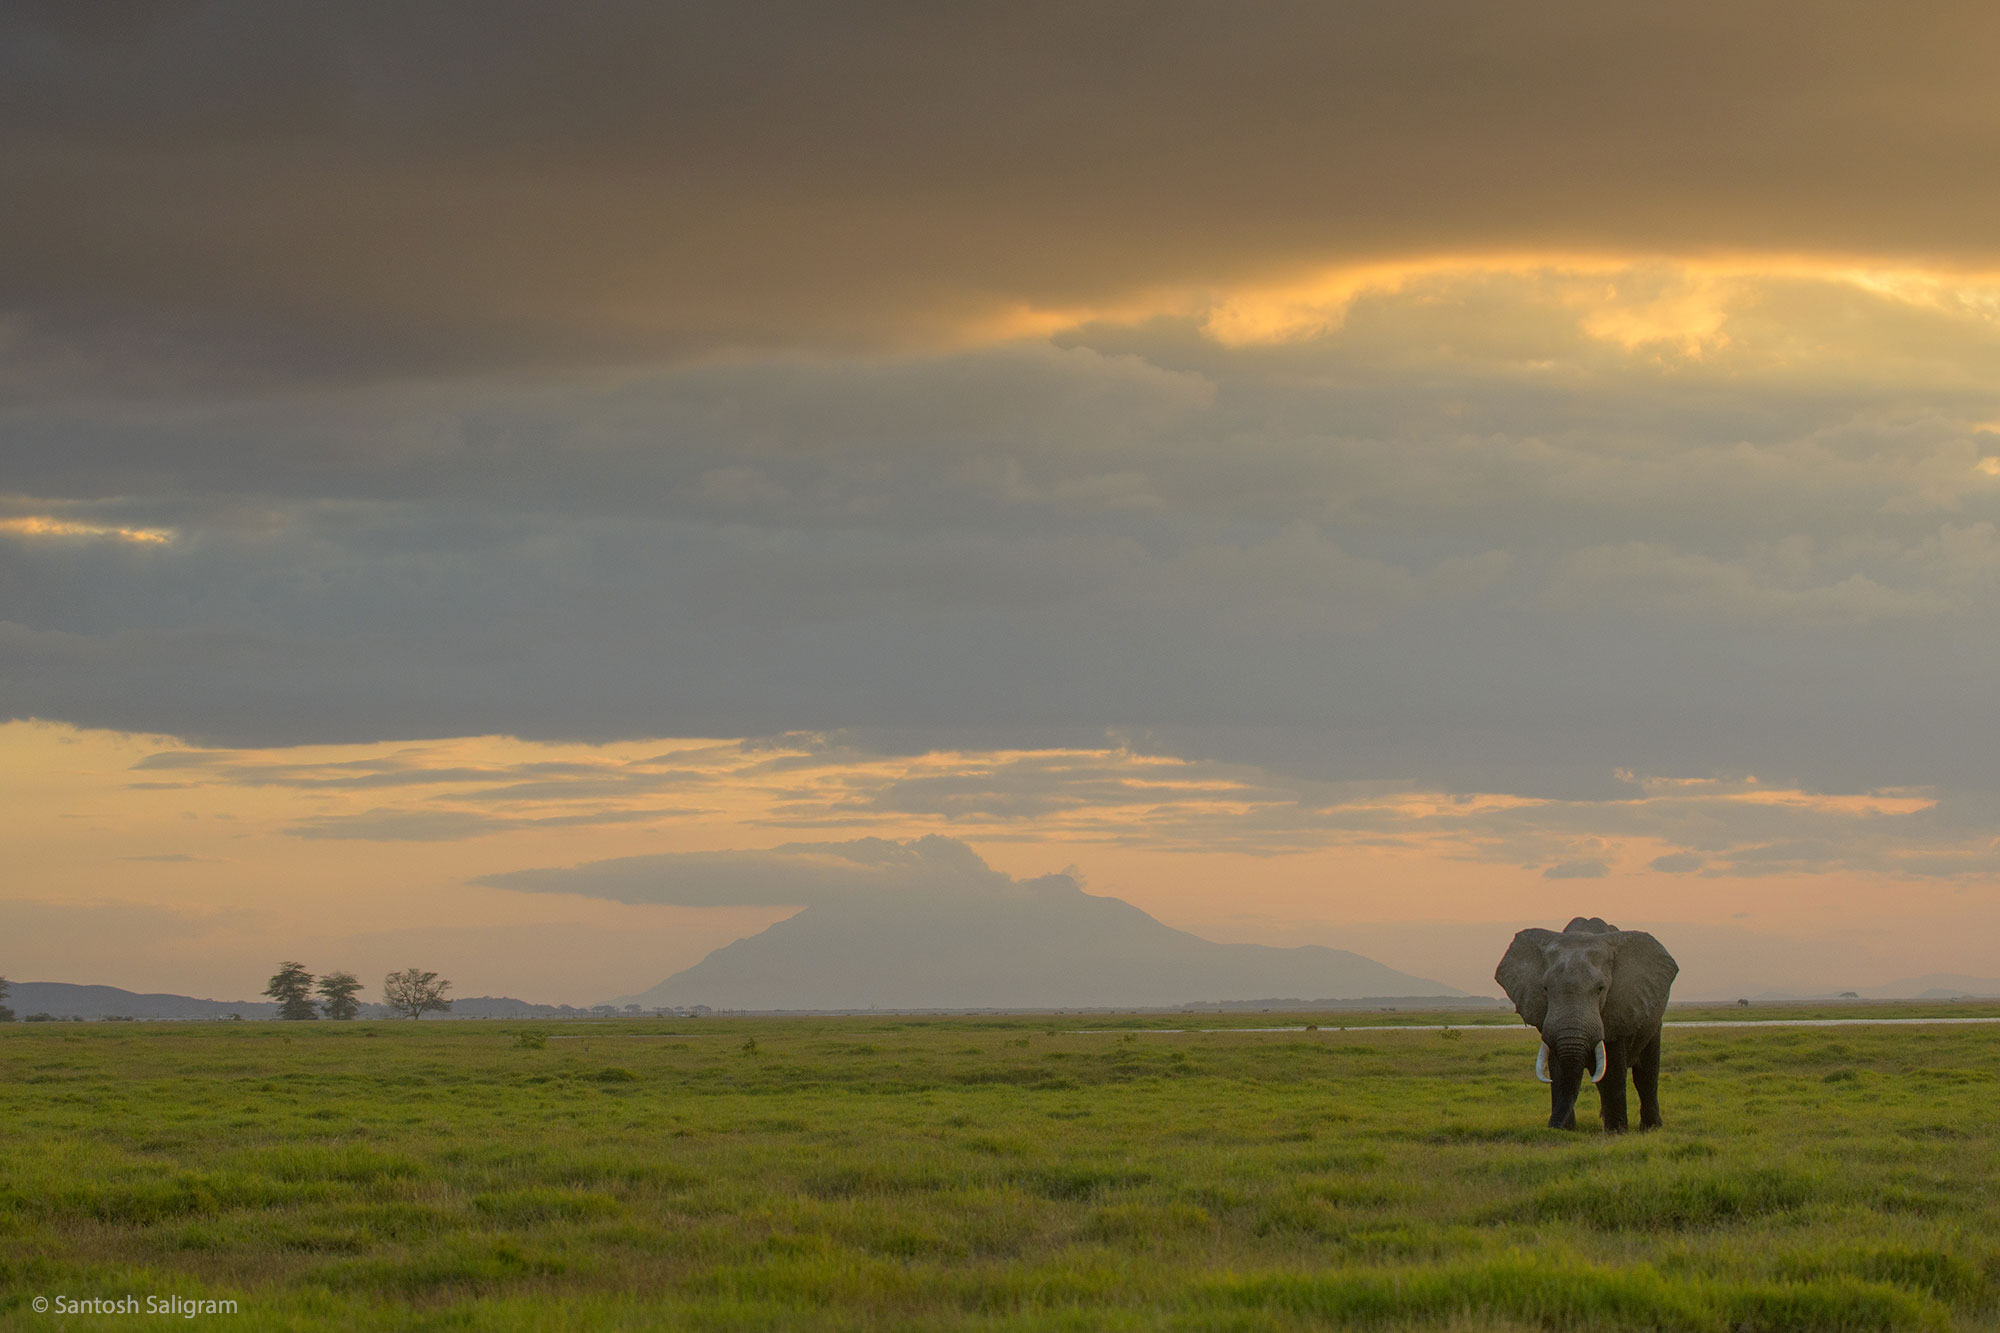 Elephant in Amboseli National Park, Kenya. By Santosh Saligram.